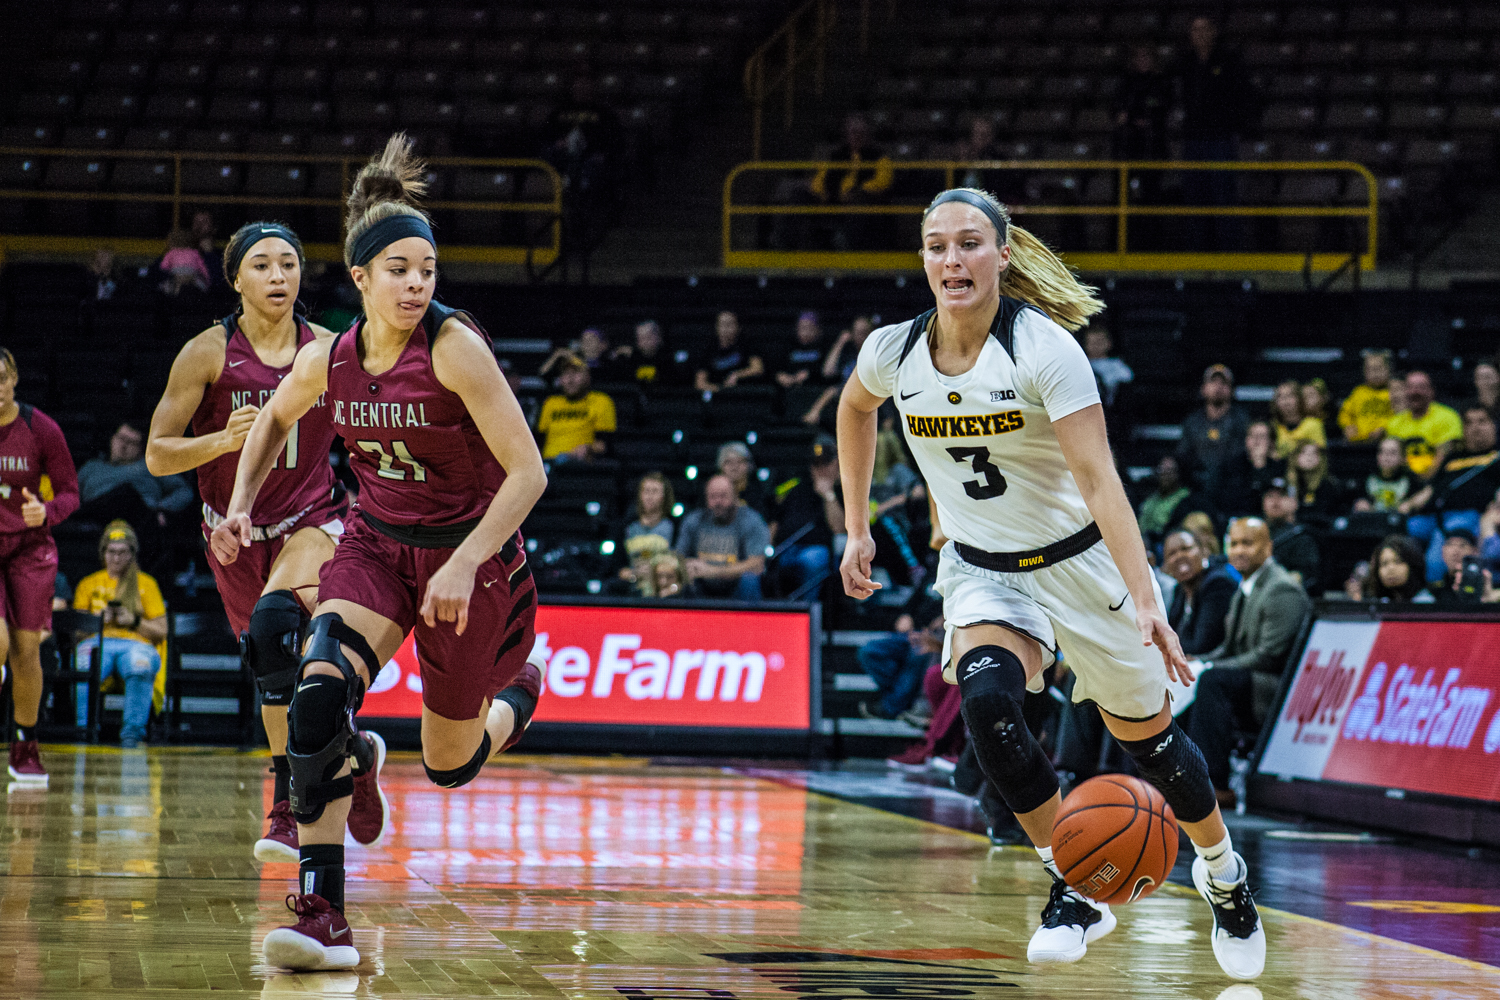 Iowa+guard+Makenzie+Meyer+dribbles+past+the+defense+during+a+women%27s+basketball+game+between+Iowa+and+North+Carolina+Central+at+Carver-Hawkeye+Arena+on+Saturday%2C+Nov.+17%2C+2018.+The+Hawkeyes+devastated+the+visiting+Eagles%2C+106-39.+